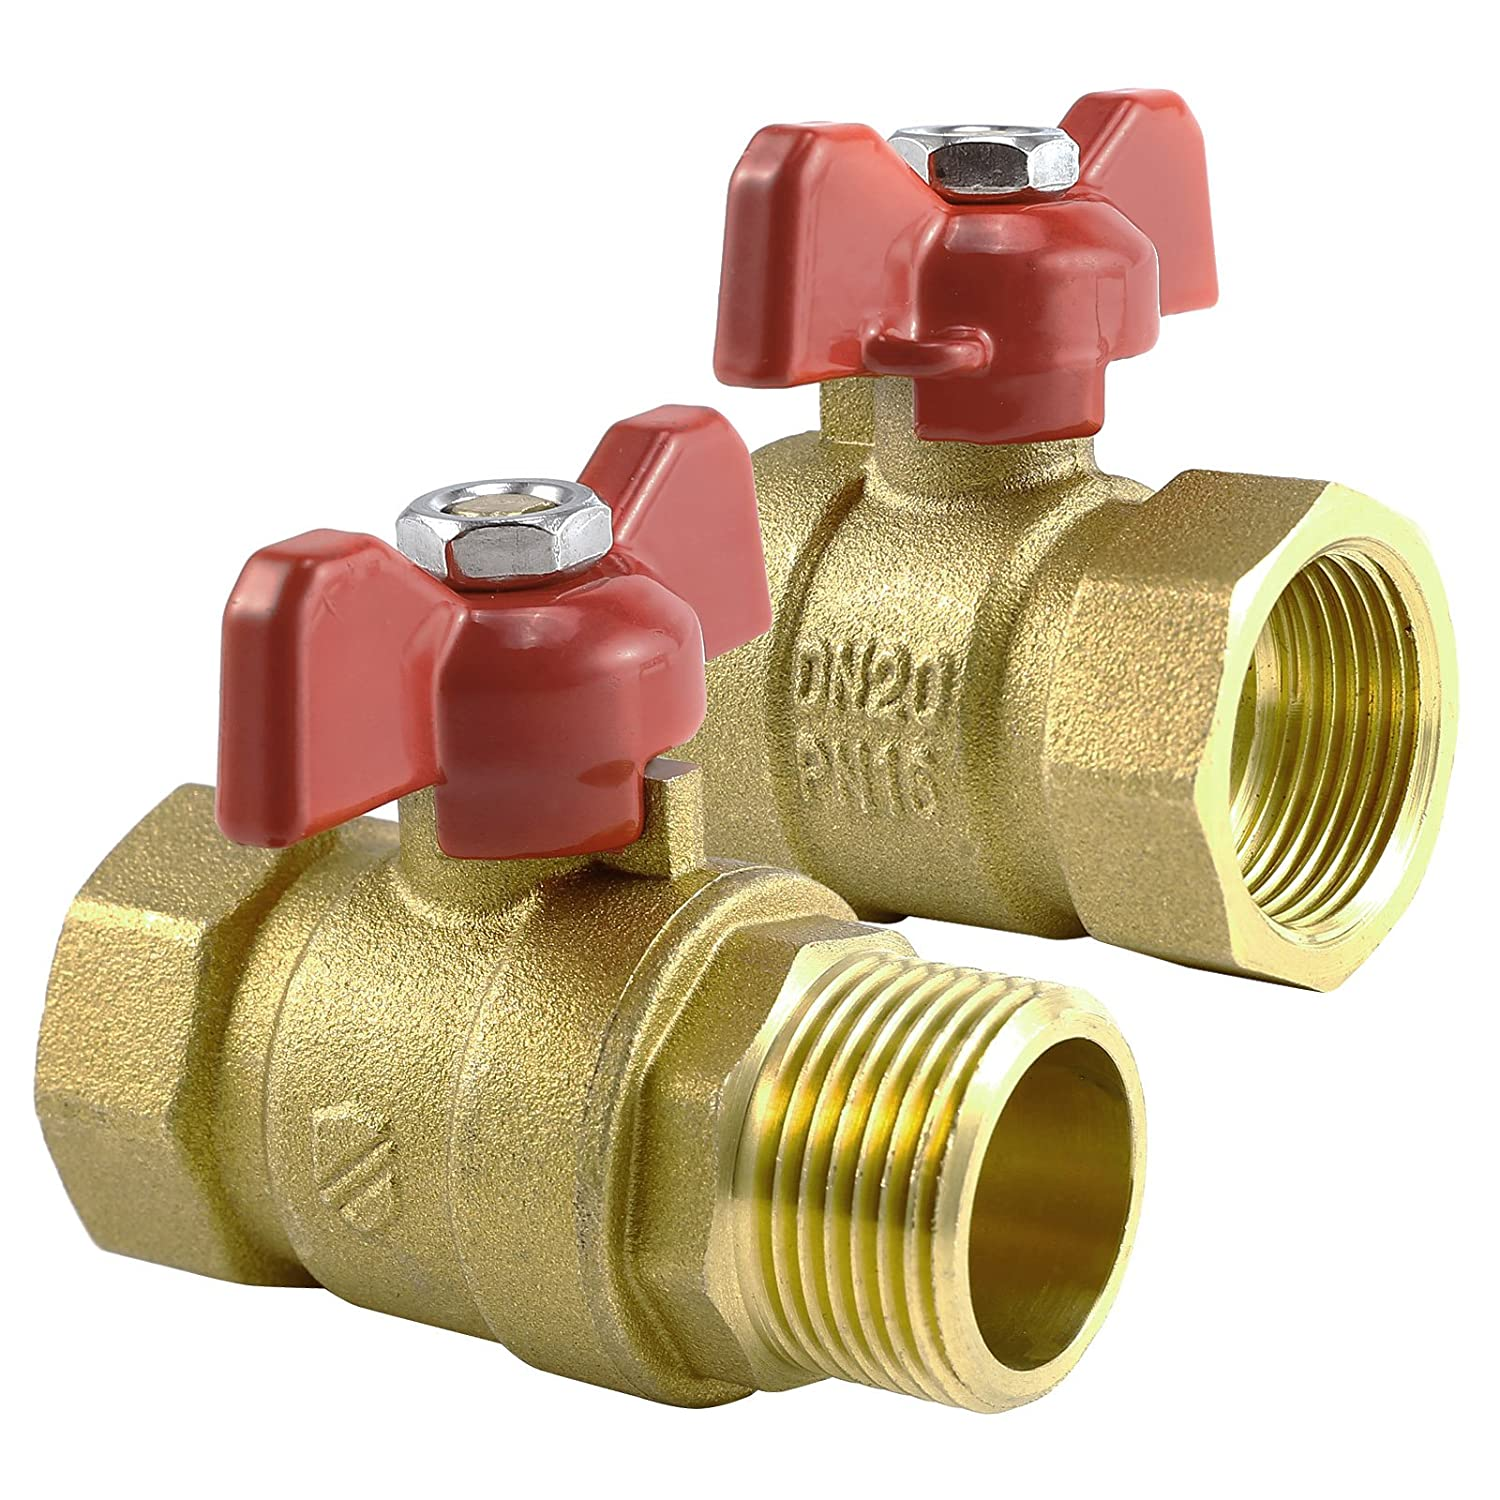 1 T Handle Ball Valves Red Handle BSP,T Lever Butterfly Ball Valves